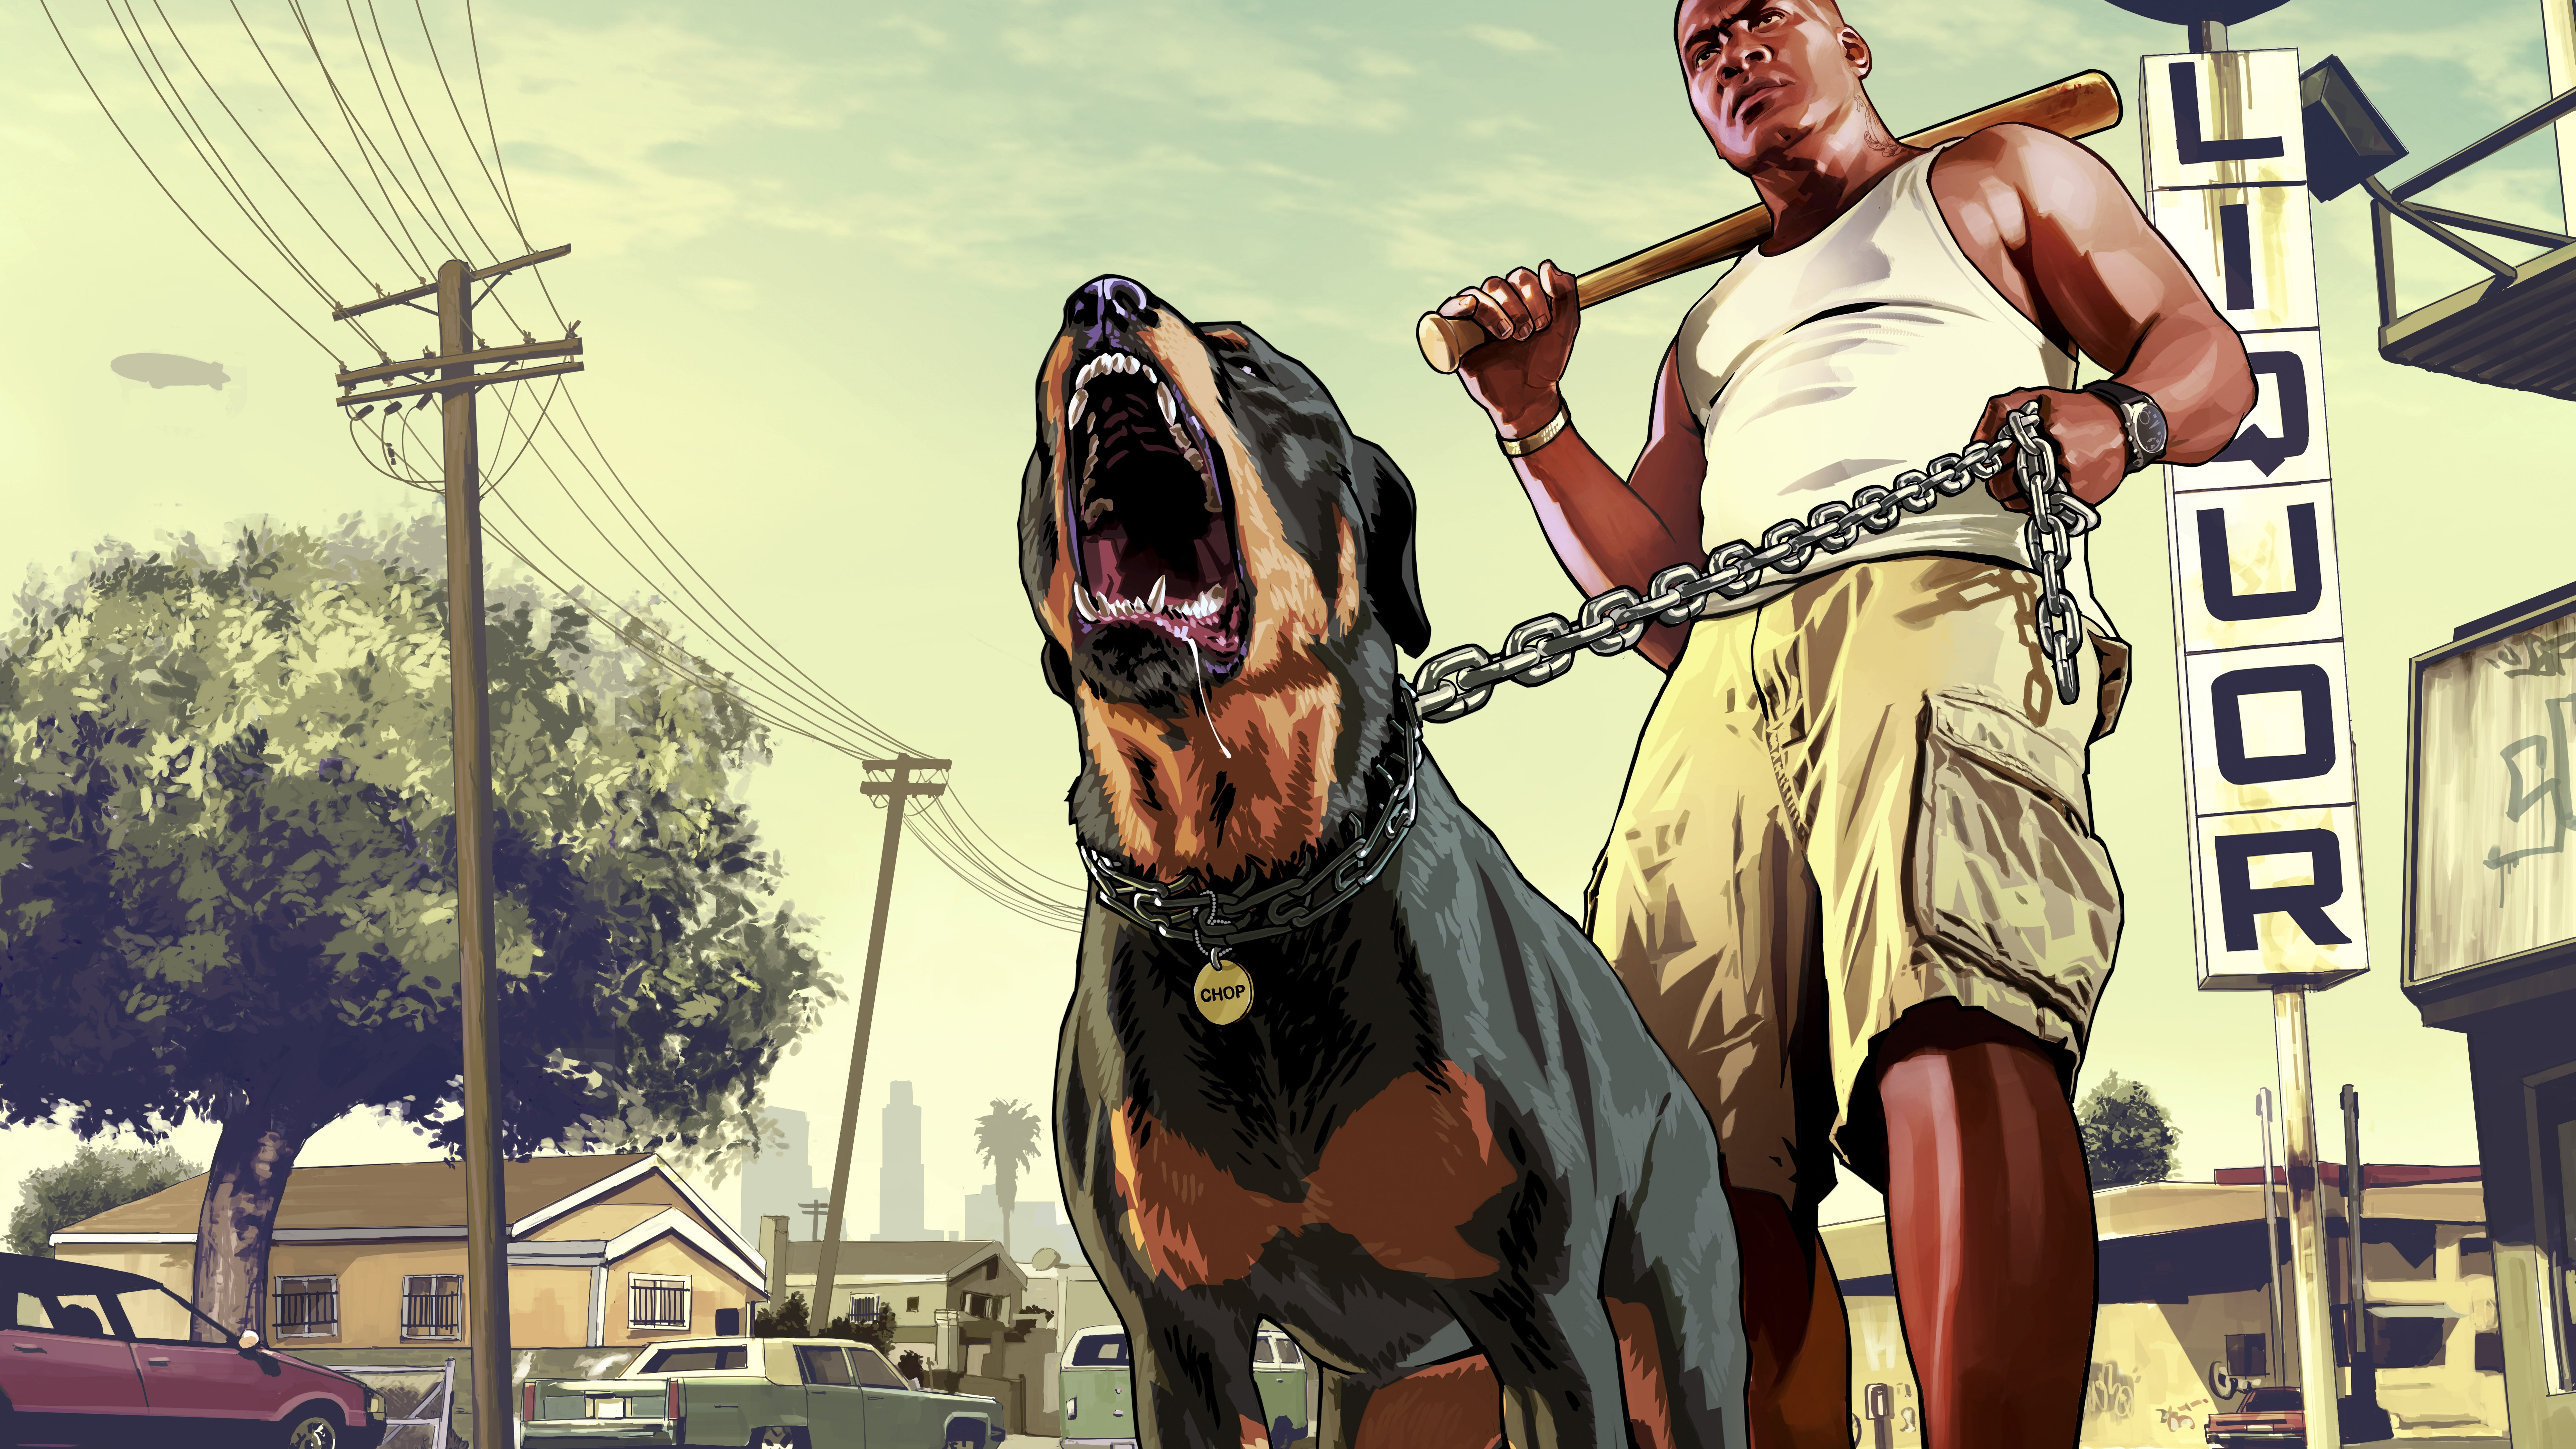 7680x4320 Gta 5 Franklin With Chop Rottweiler 8k 8k Hd 4k Wallpapers Images Backgrounds Photos And Pictures